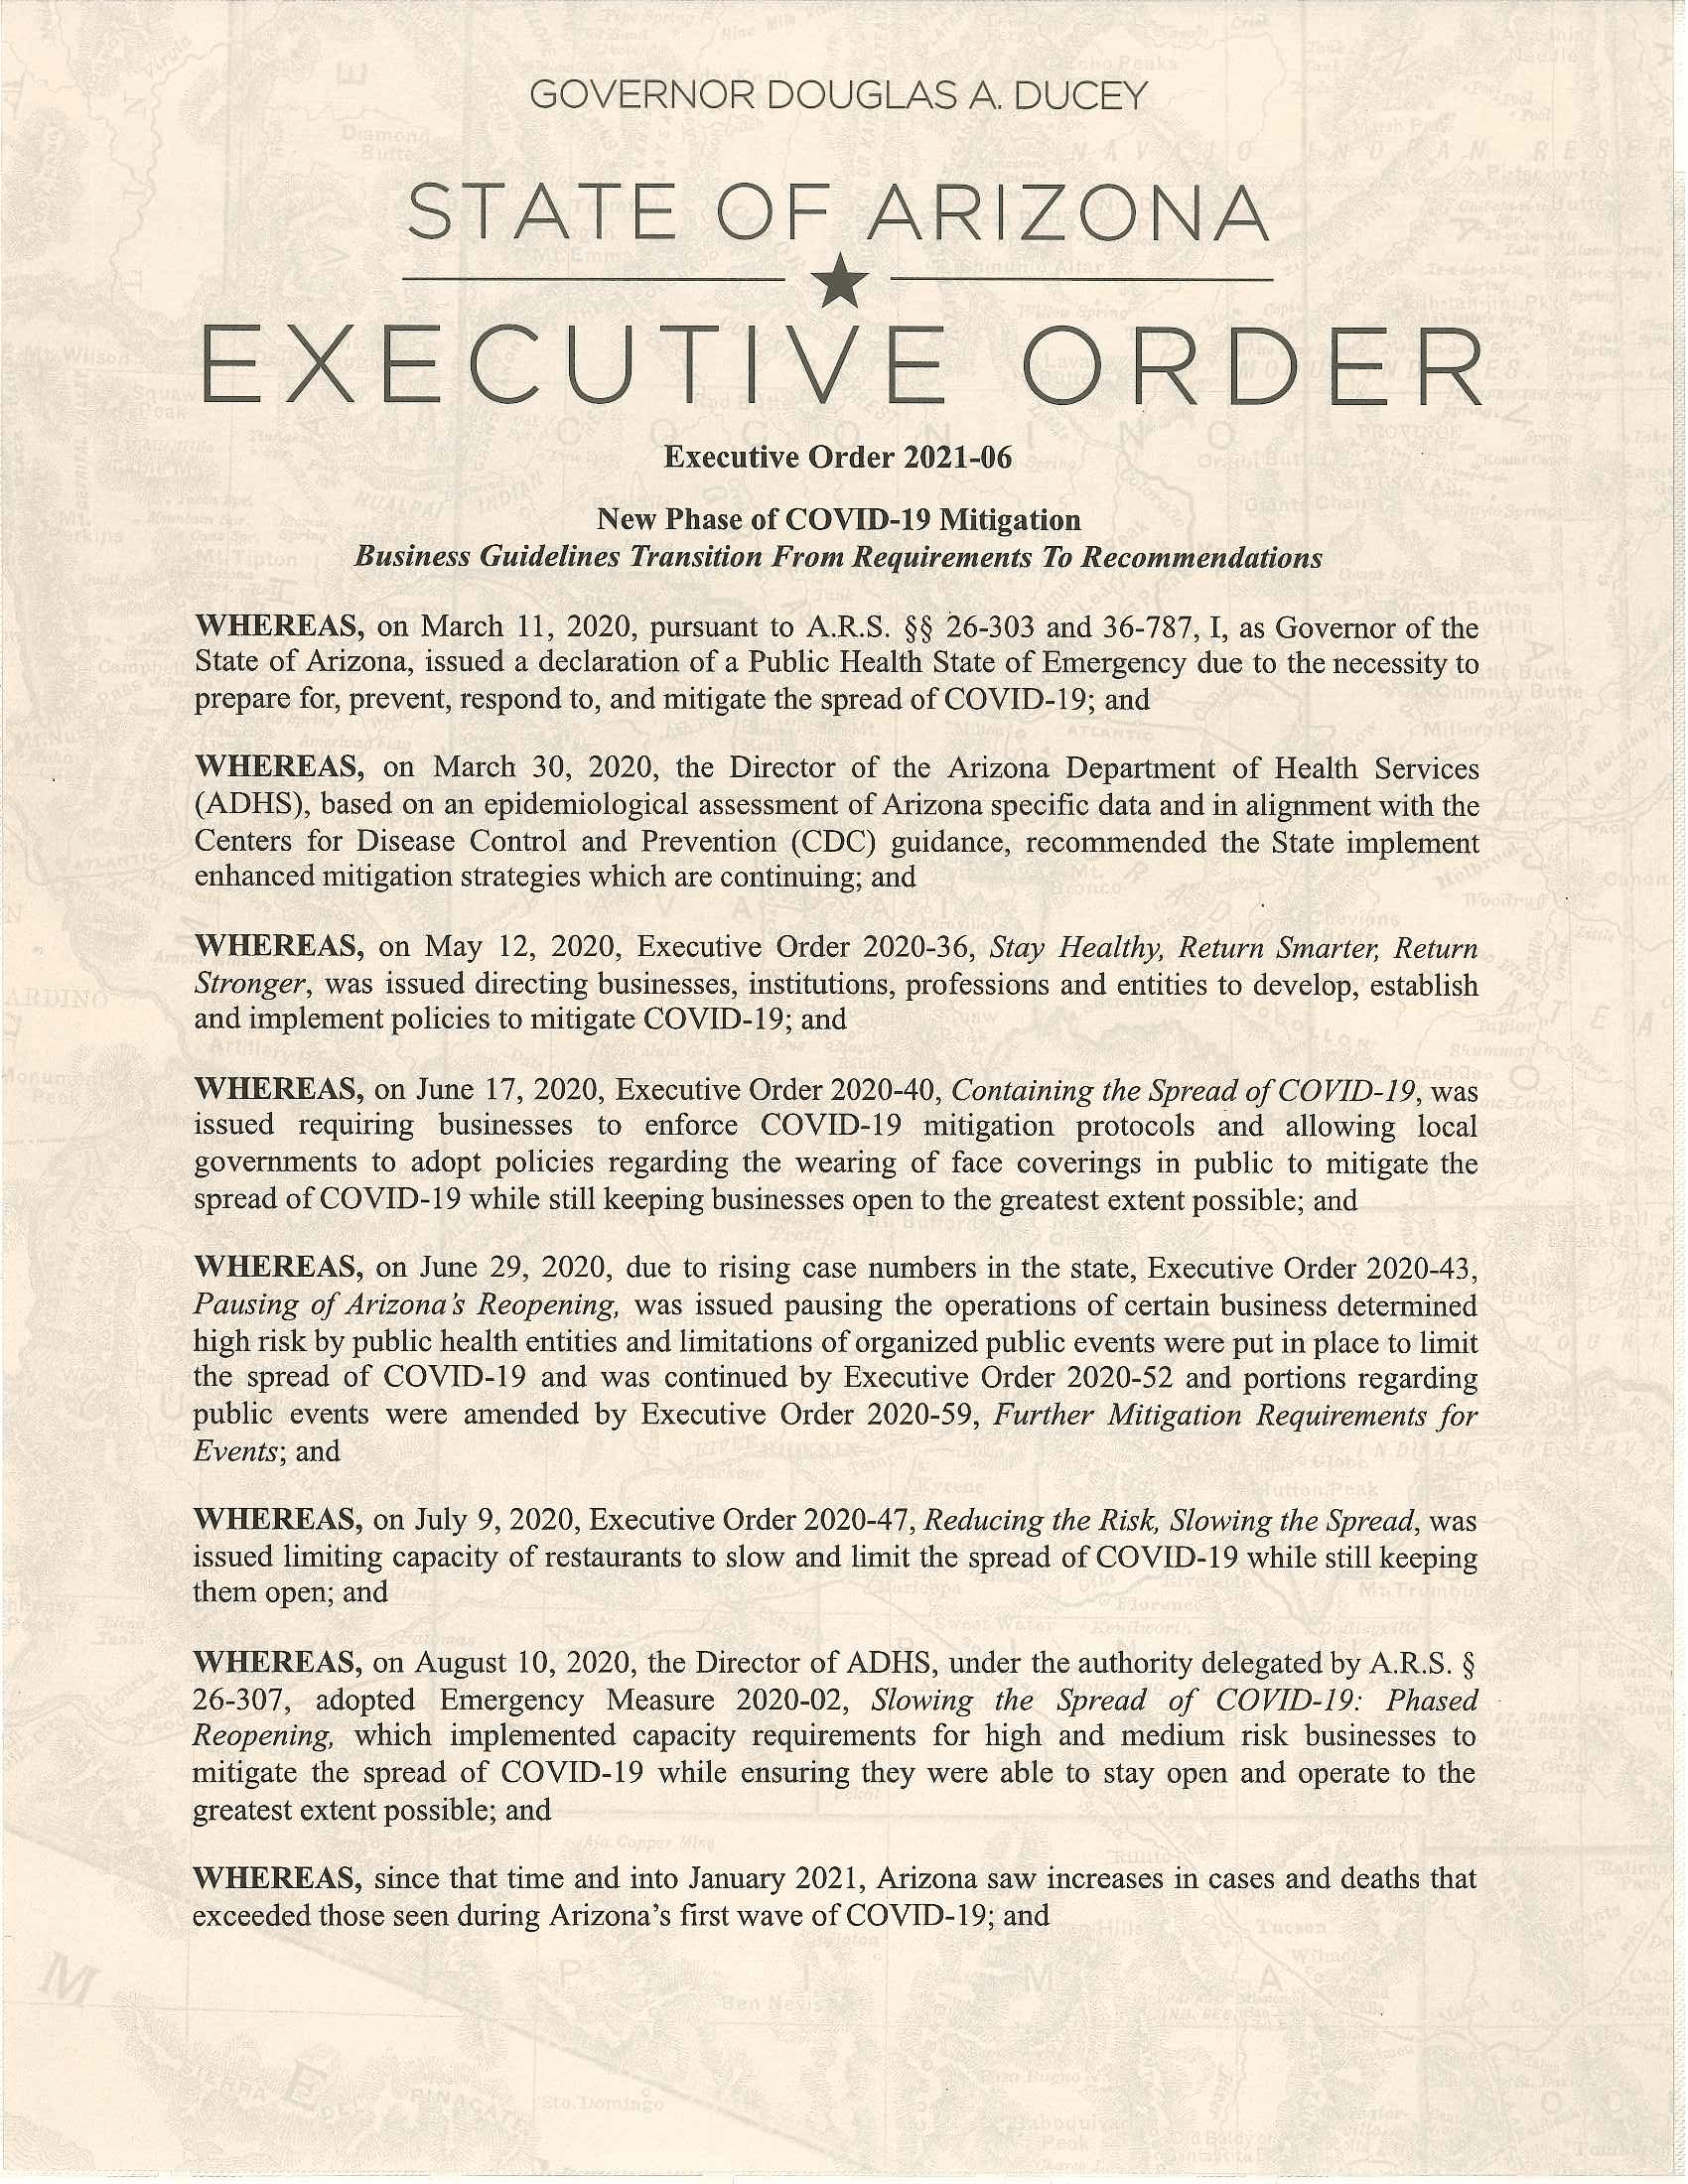 Page 1 of Doug Ducey's Executive Order 2021-06